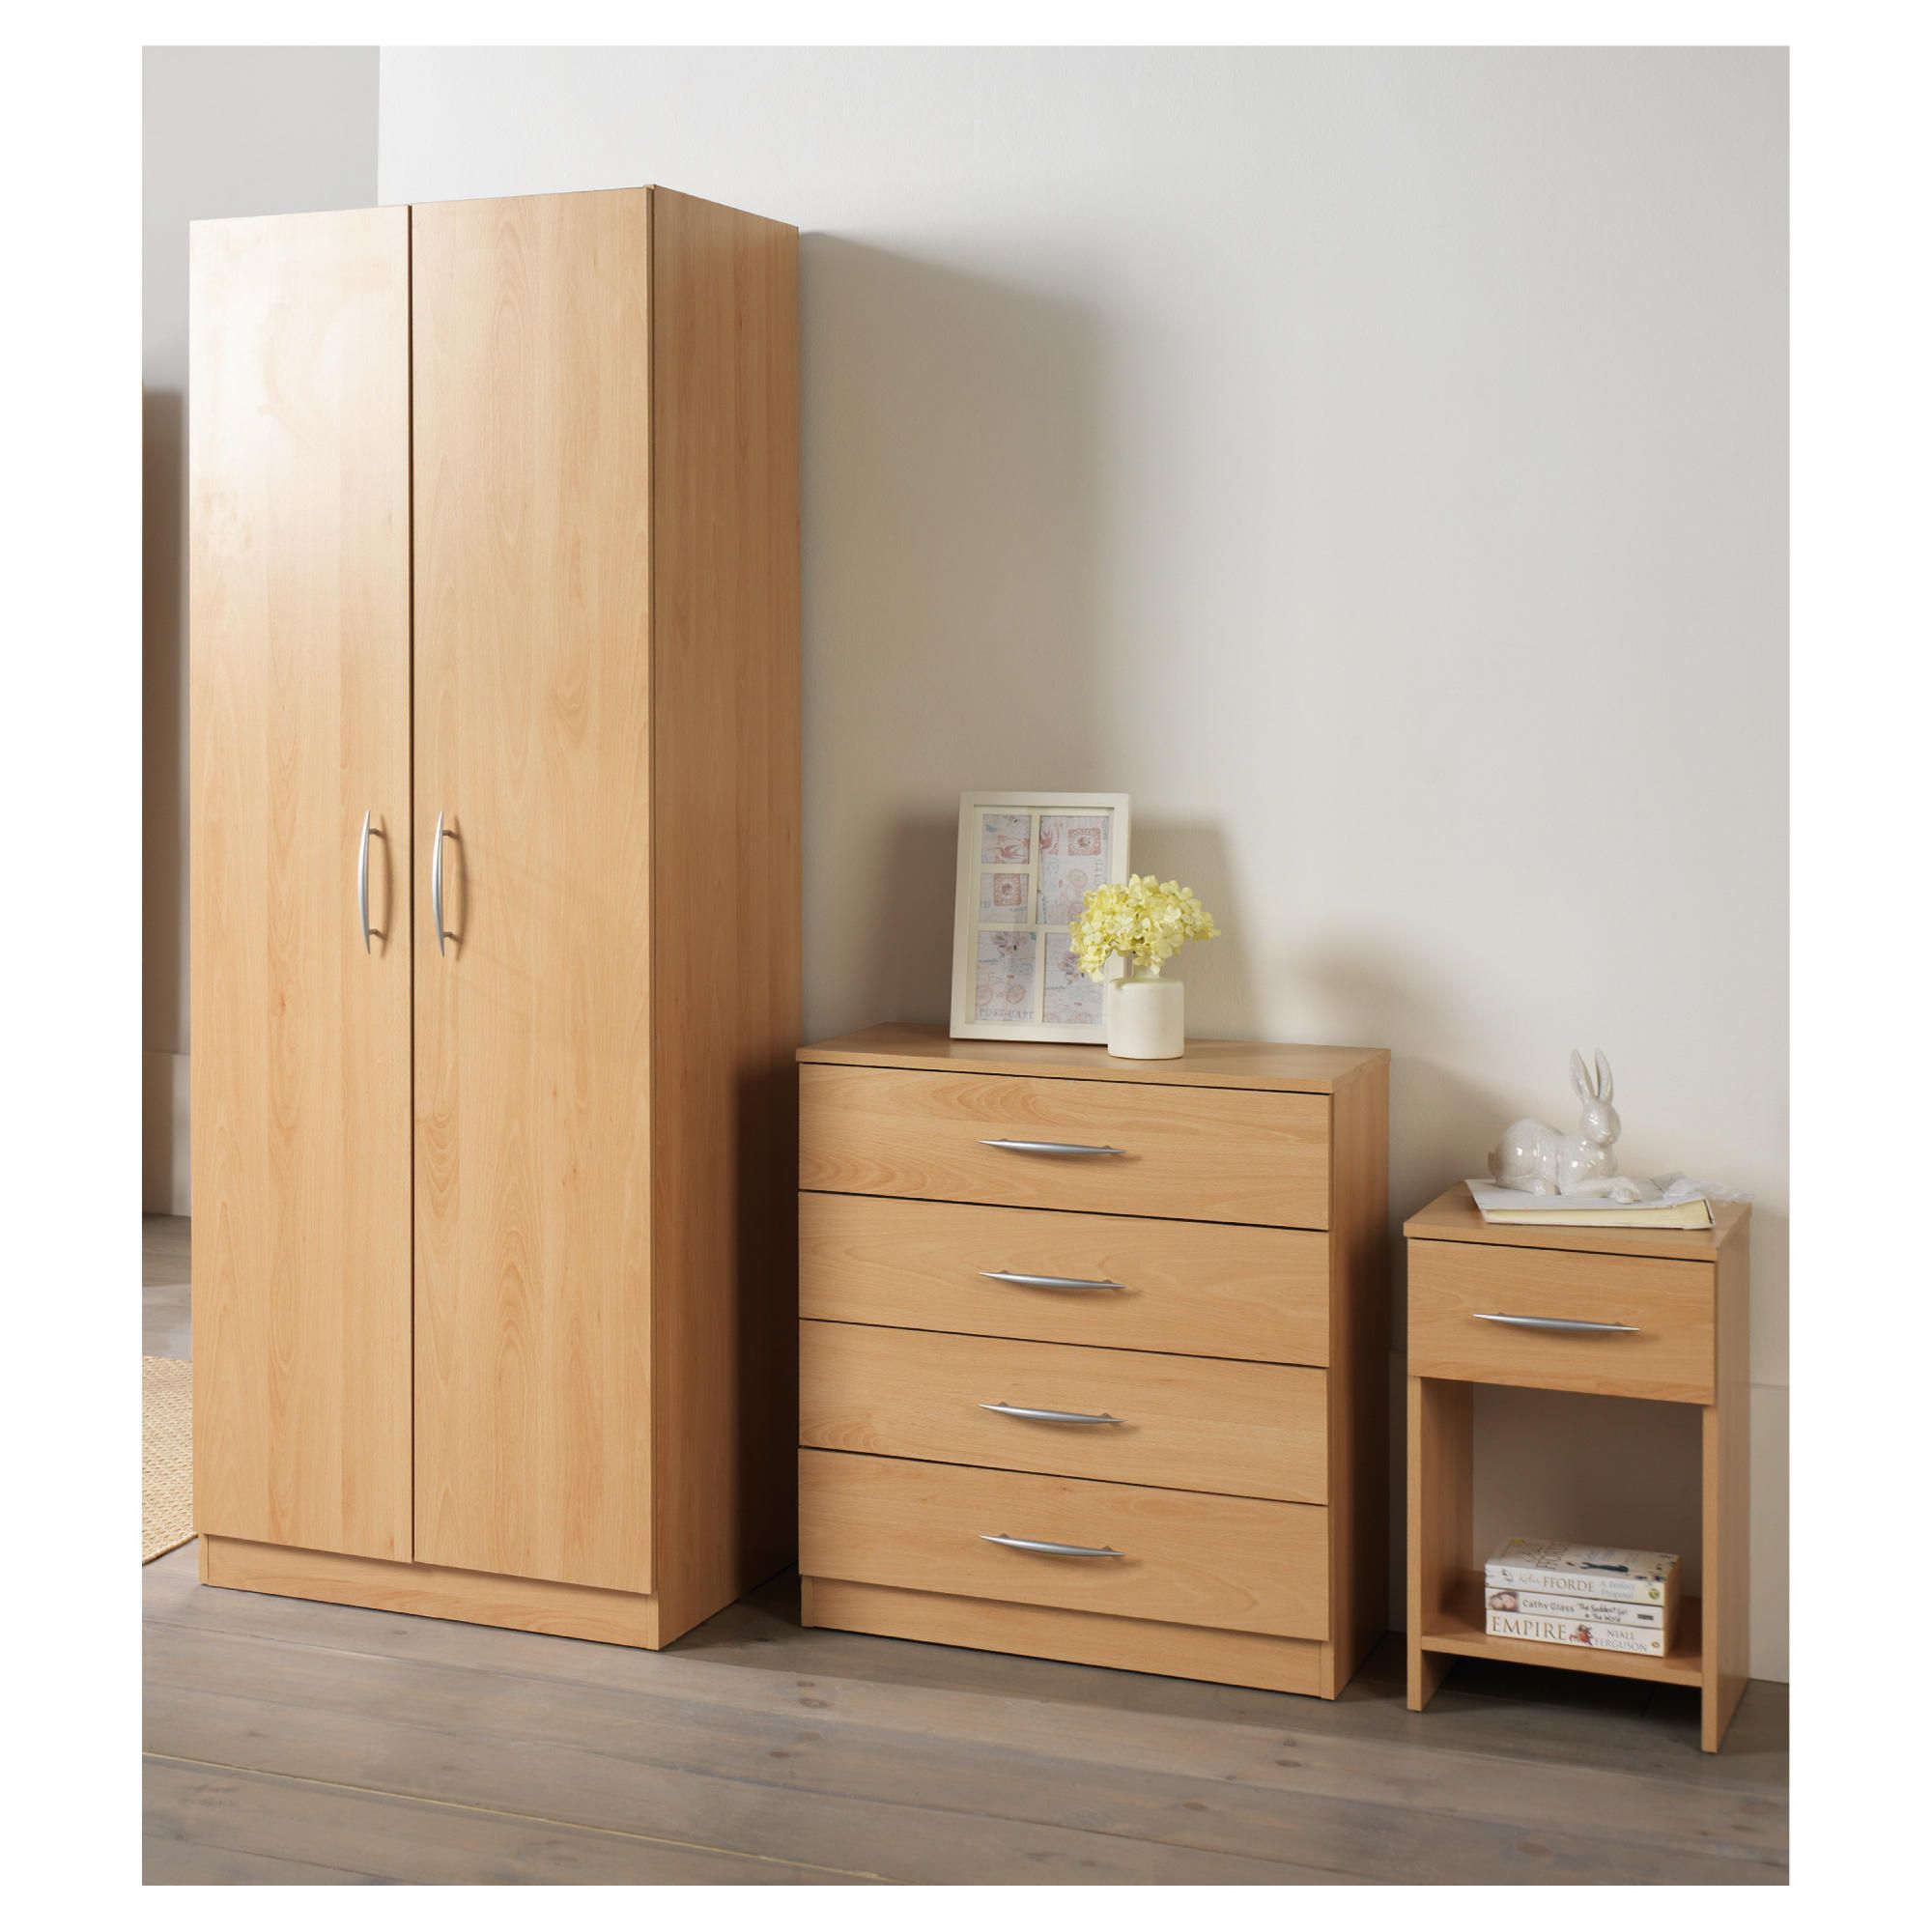 Bedroom Furniture Direct: Tesco Direct Bedroom Furniture Sets